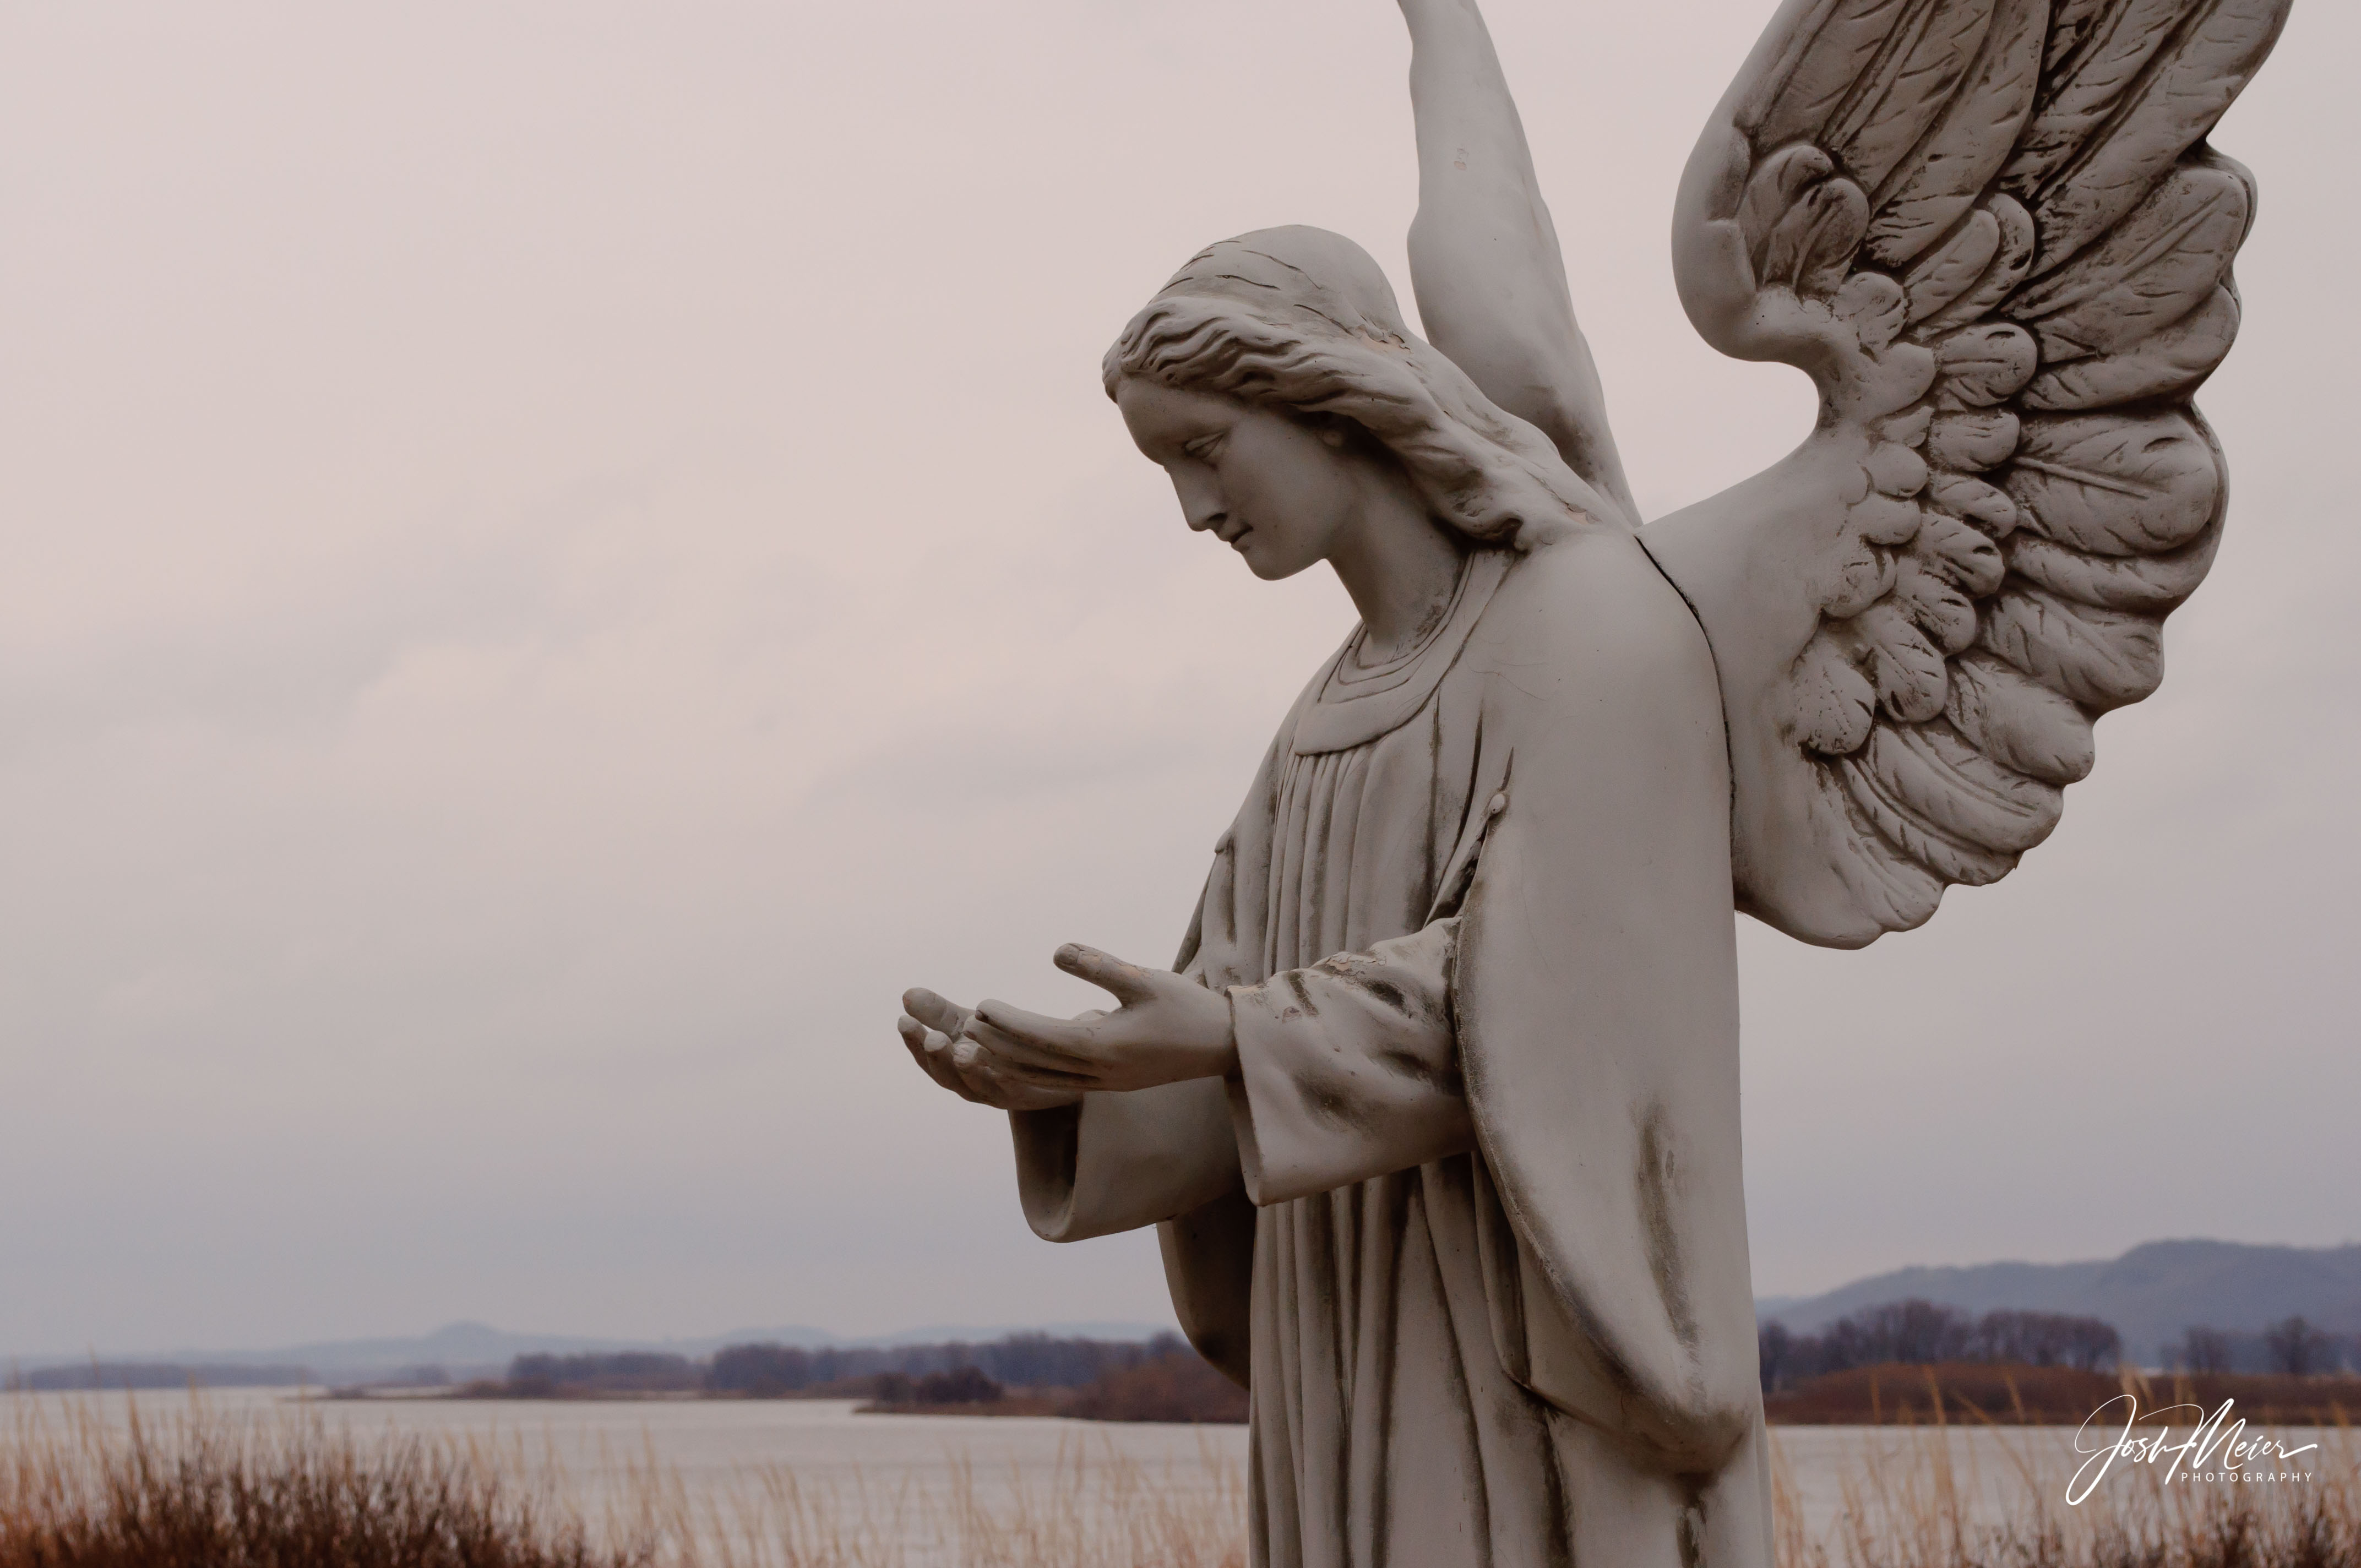 An angel statue looking westward from the banks of the Mississippi River in Bellevue, Iowa.